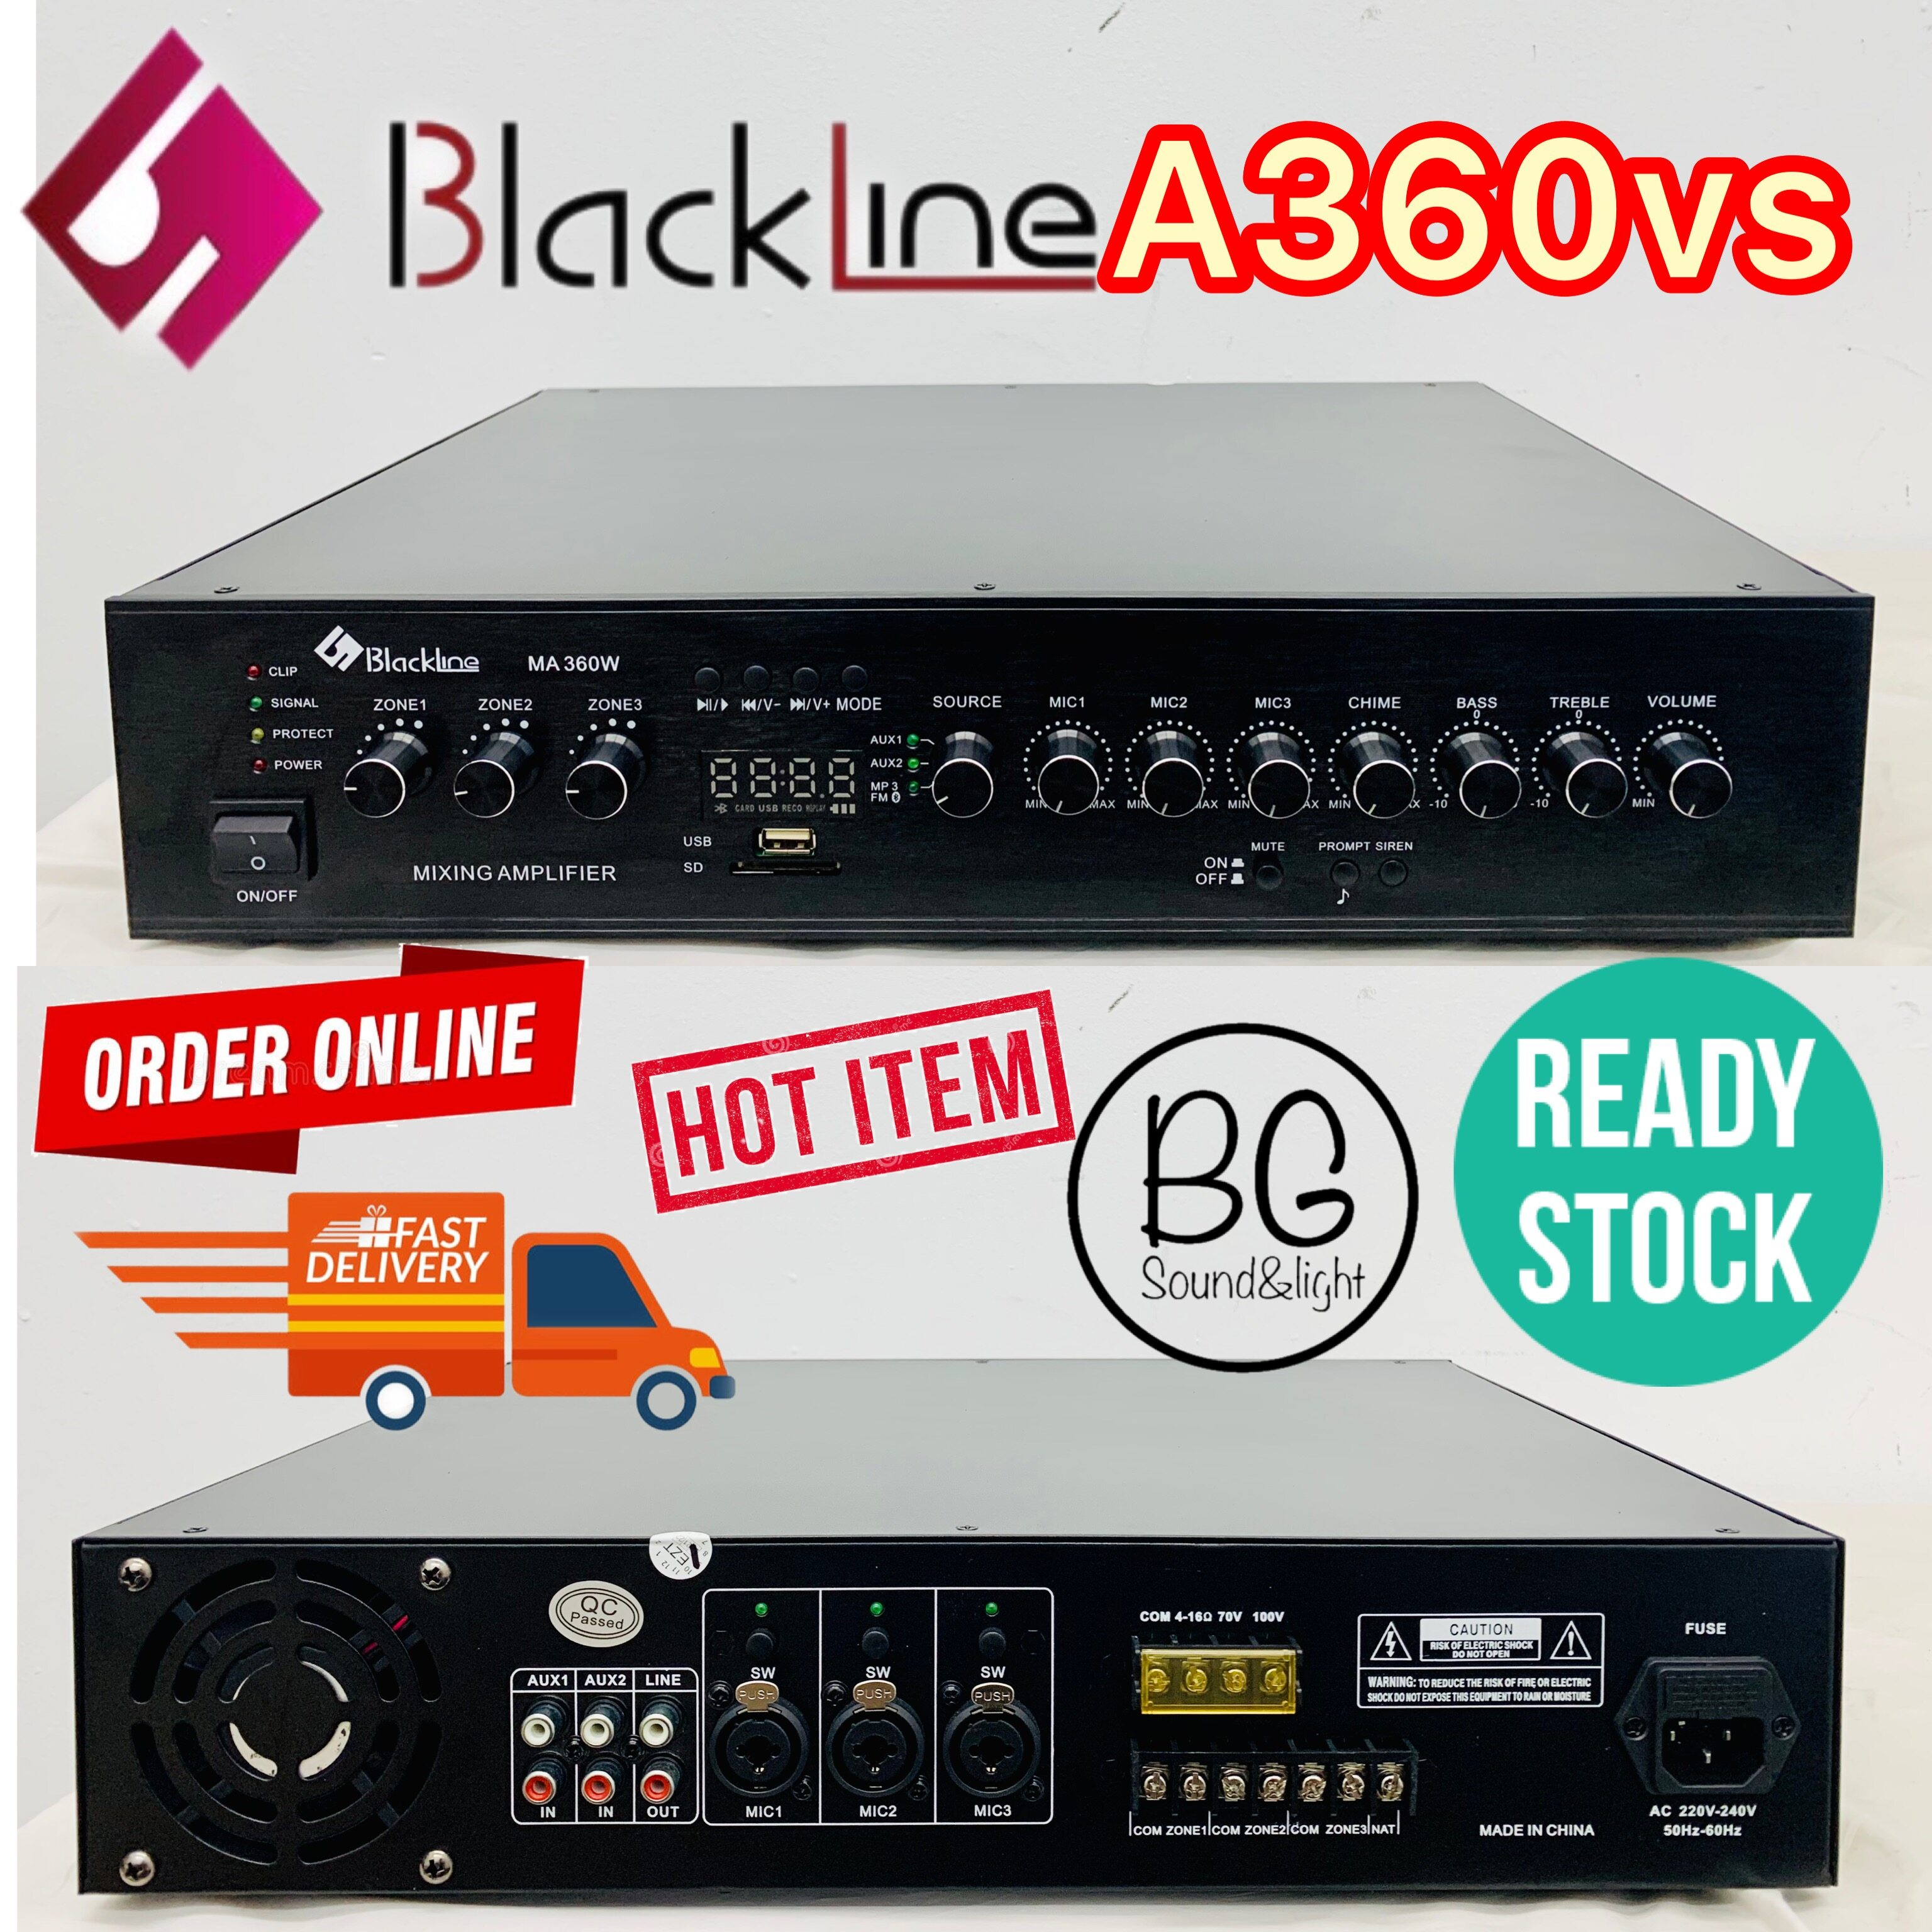 [Ready Stock]Blackline A360VS 360W Public Address PA System Mixing Amplifier With 3 Mic Input/ USB / 3 Zones With Volume